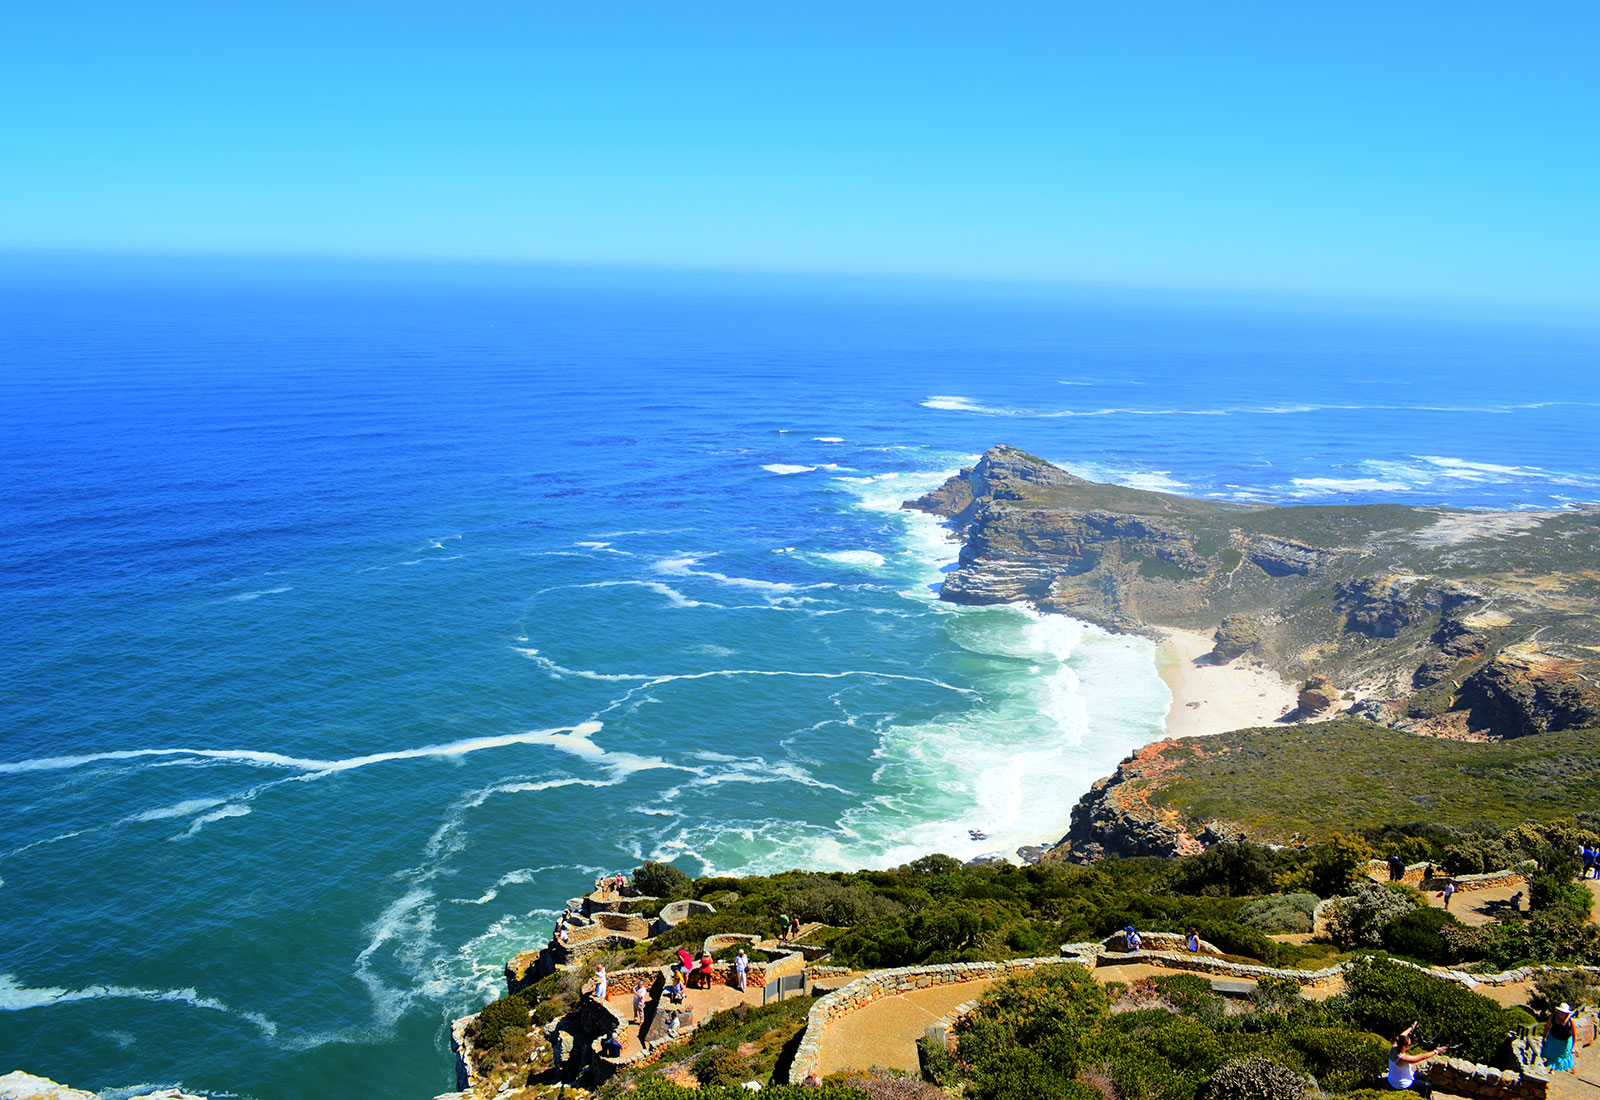 From Cape Winelands to Cape Point